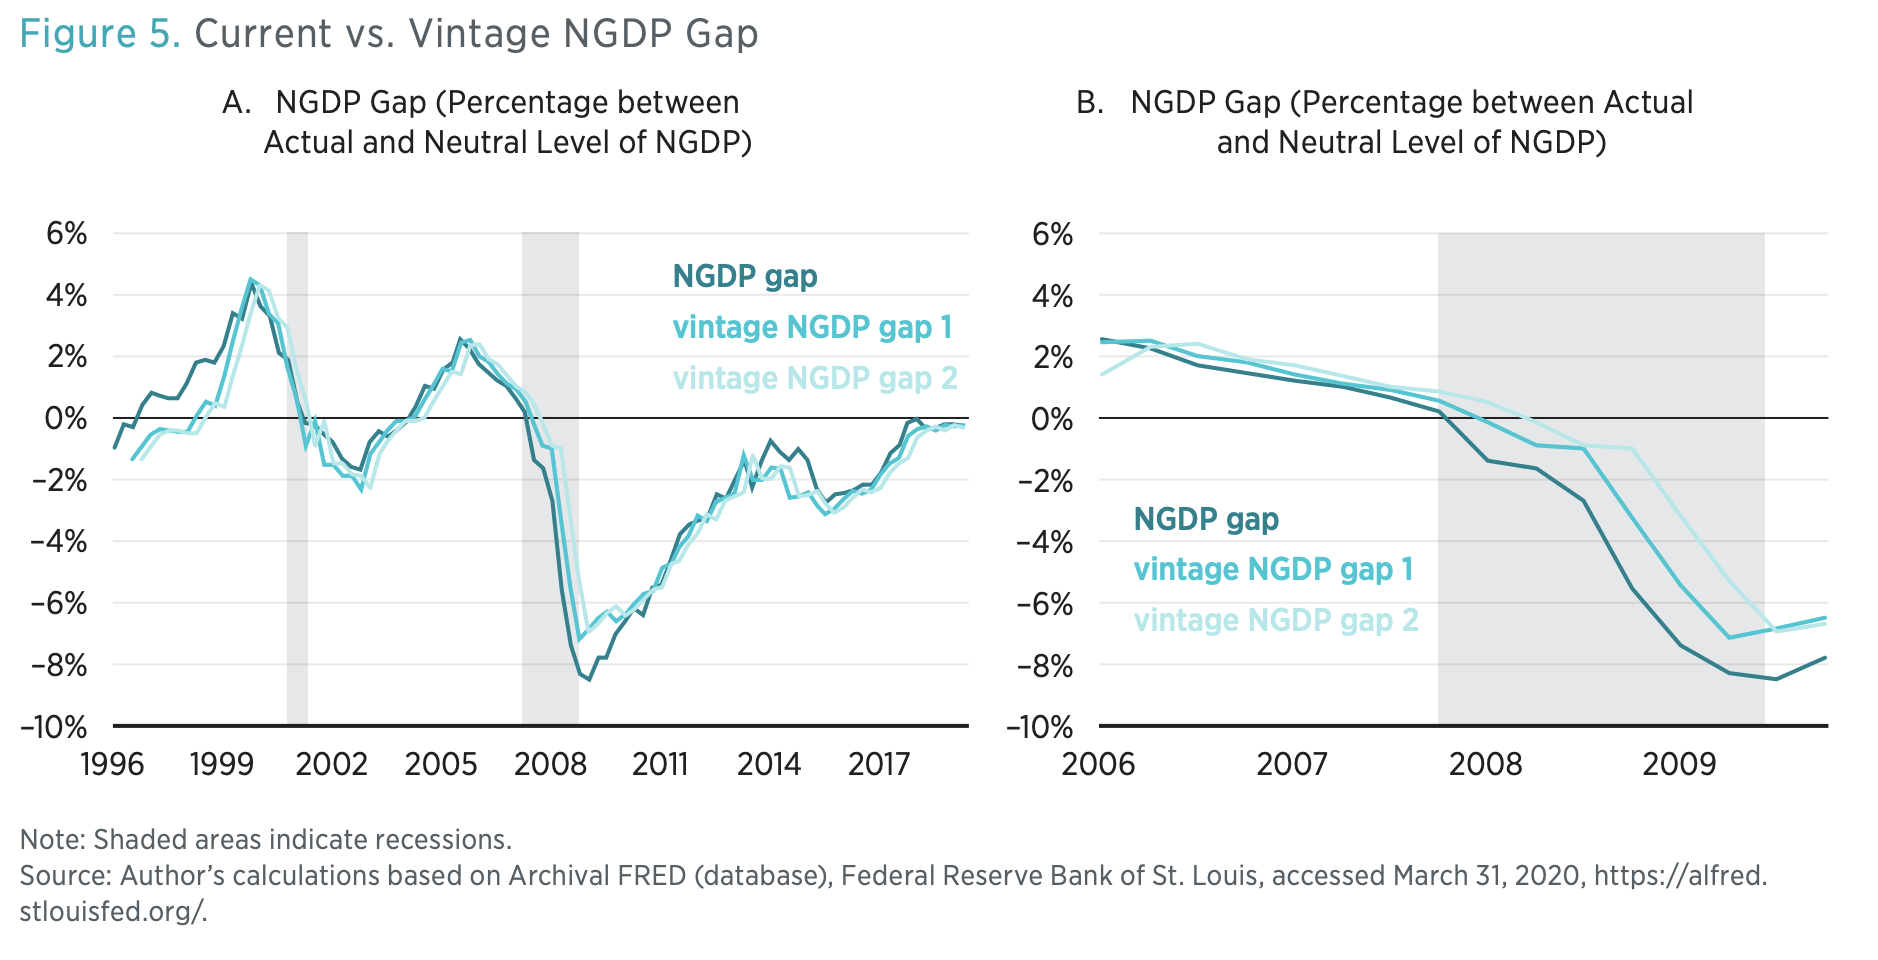 Figure 5. Current vs. Vintage NGDP Gap